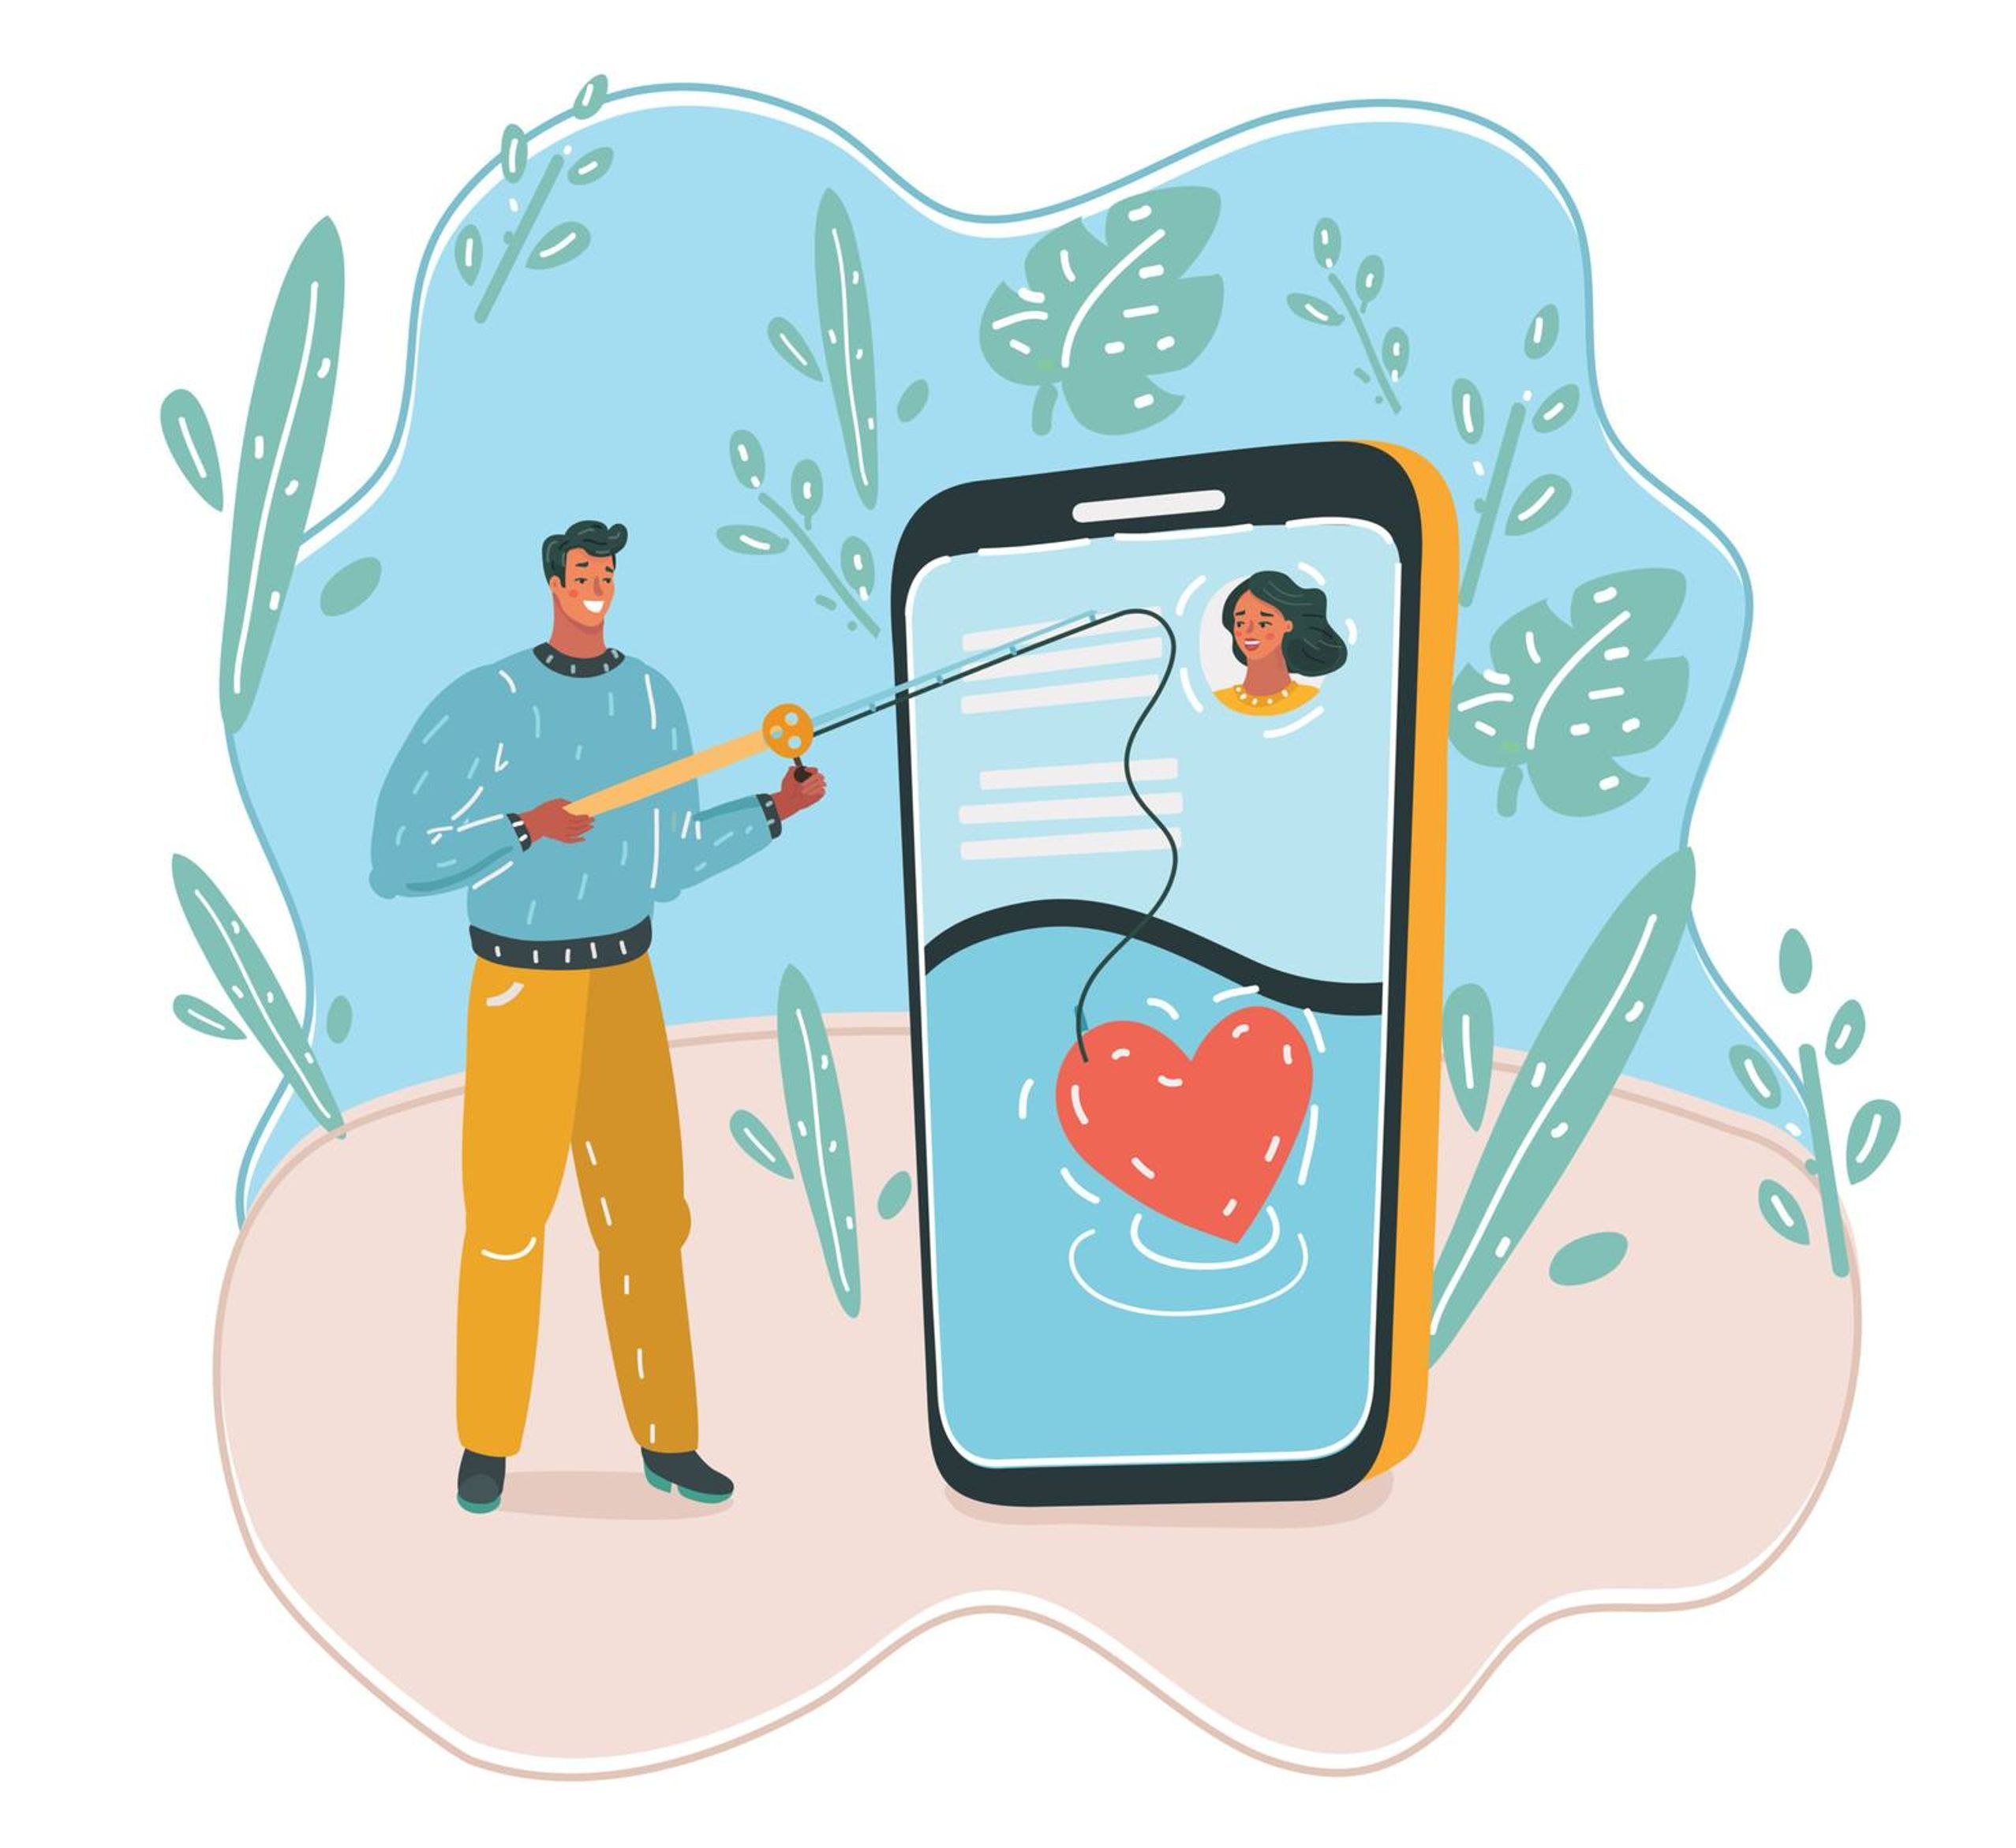 Illustration of man holding a fishing rod and fishing for a heart on a large smartphone displaying a dating app profile